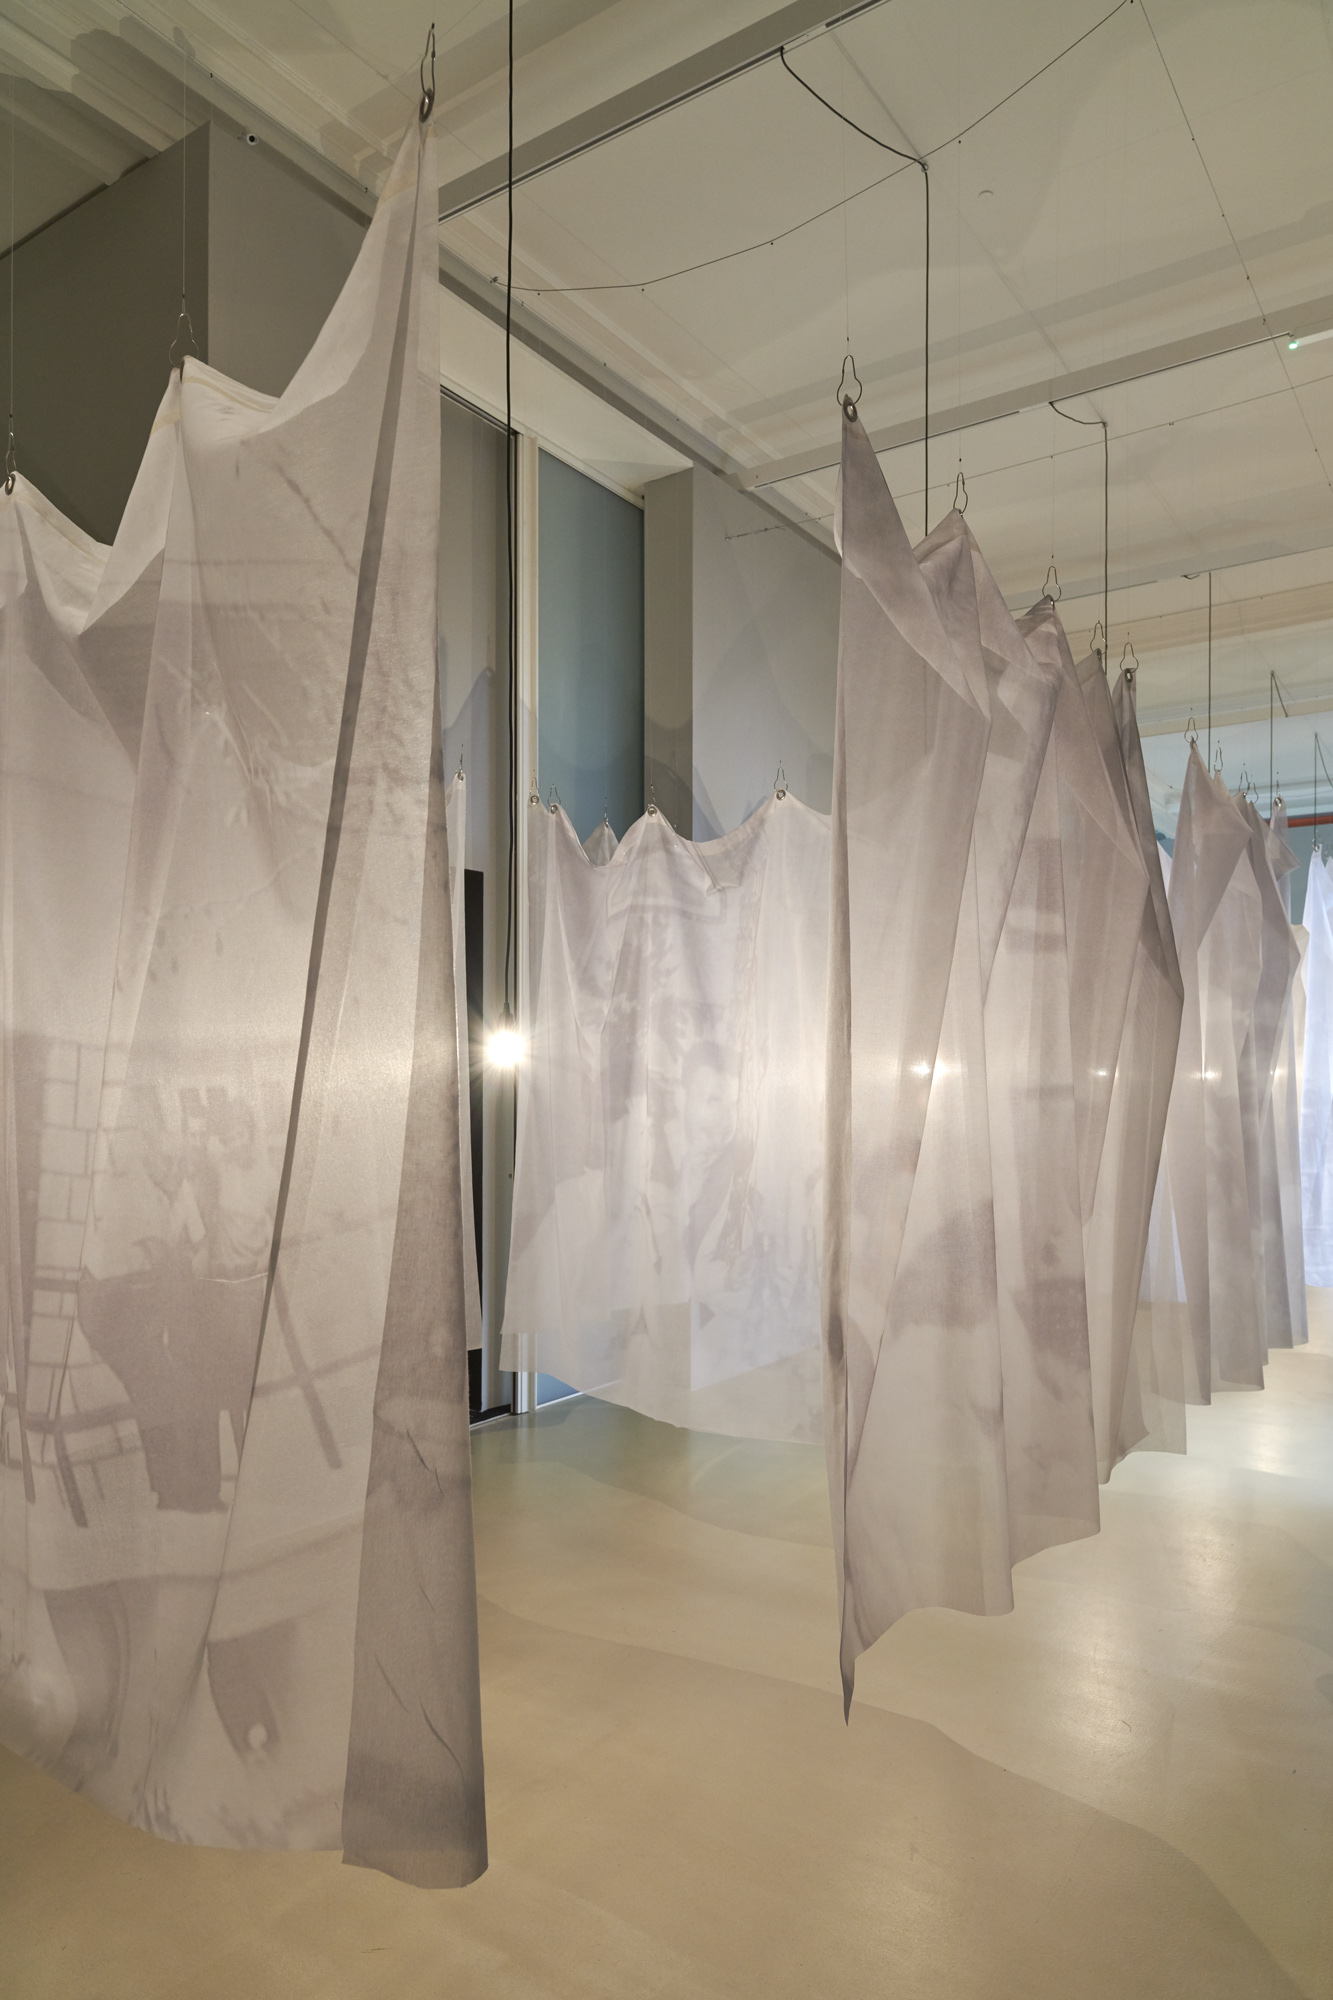 La traversée de la vie (The Crossing of Life), 2015 31 printed veils, 12 light bulbs, wire, electric wire